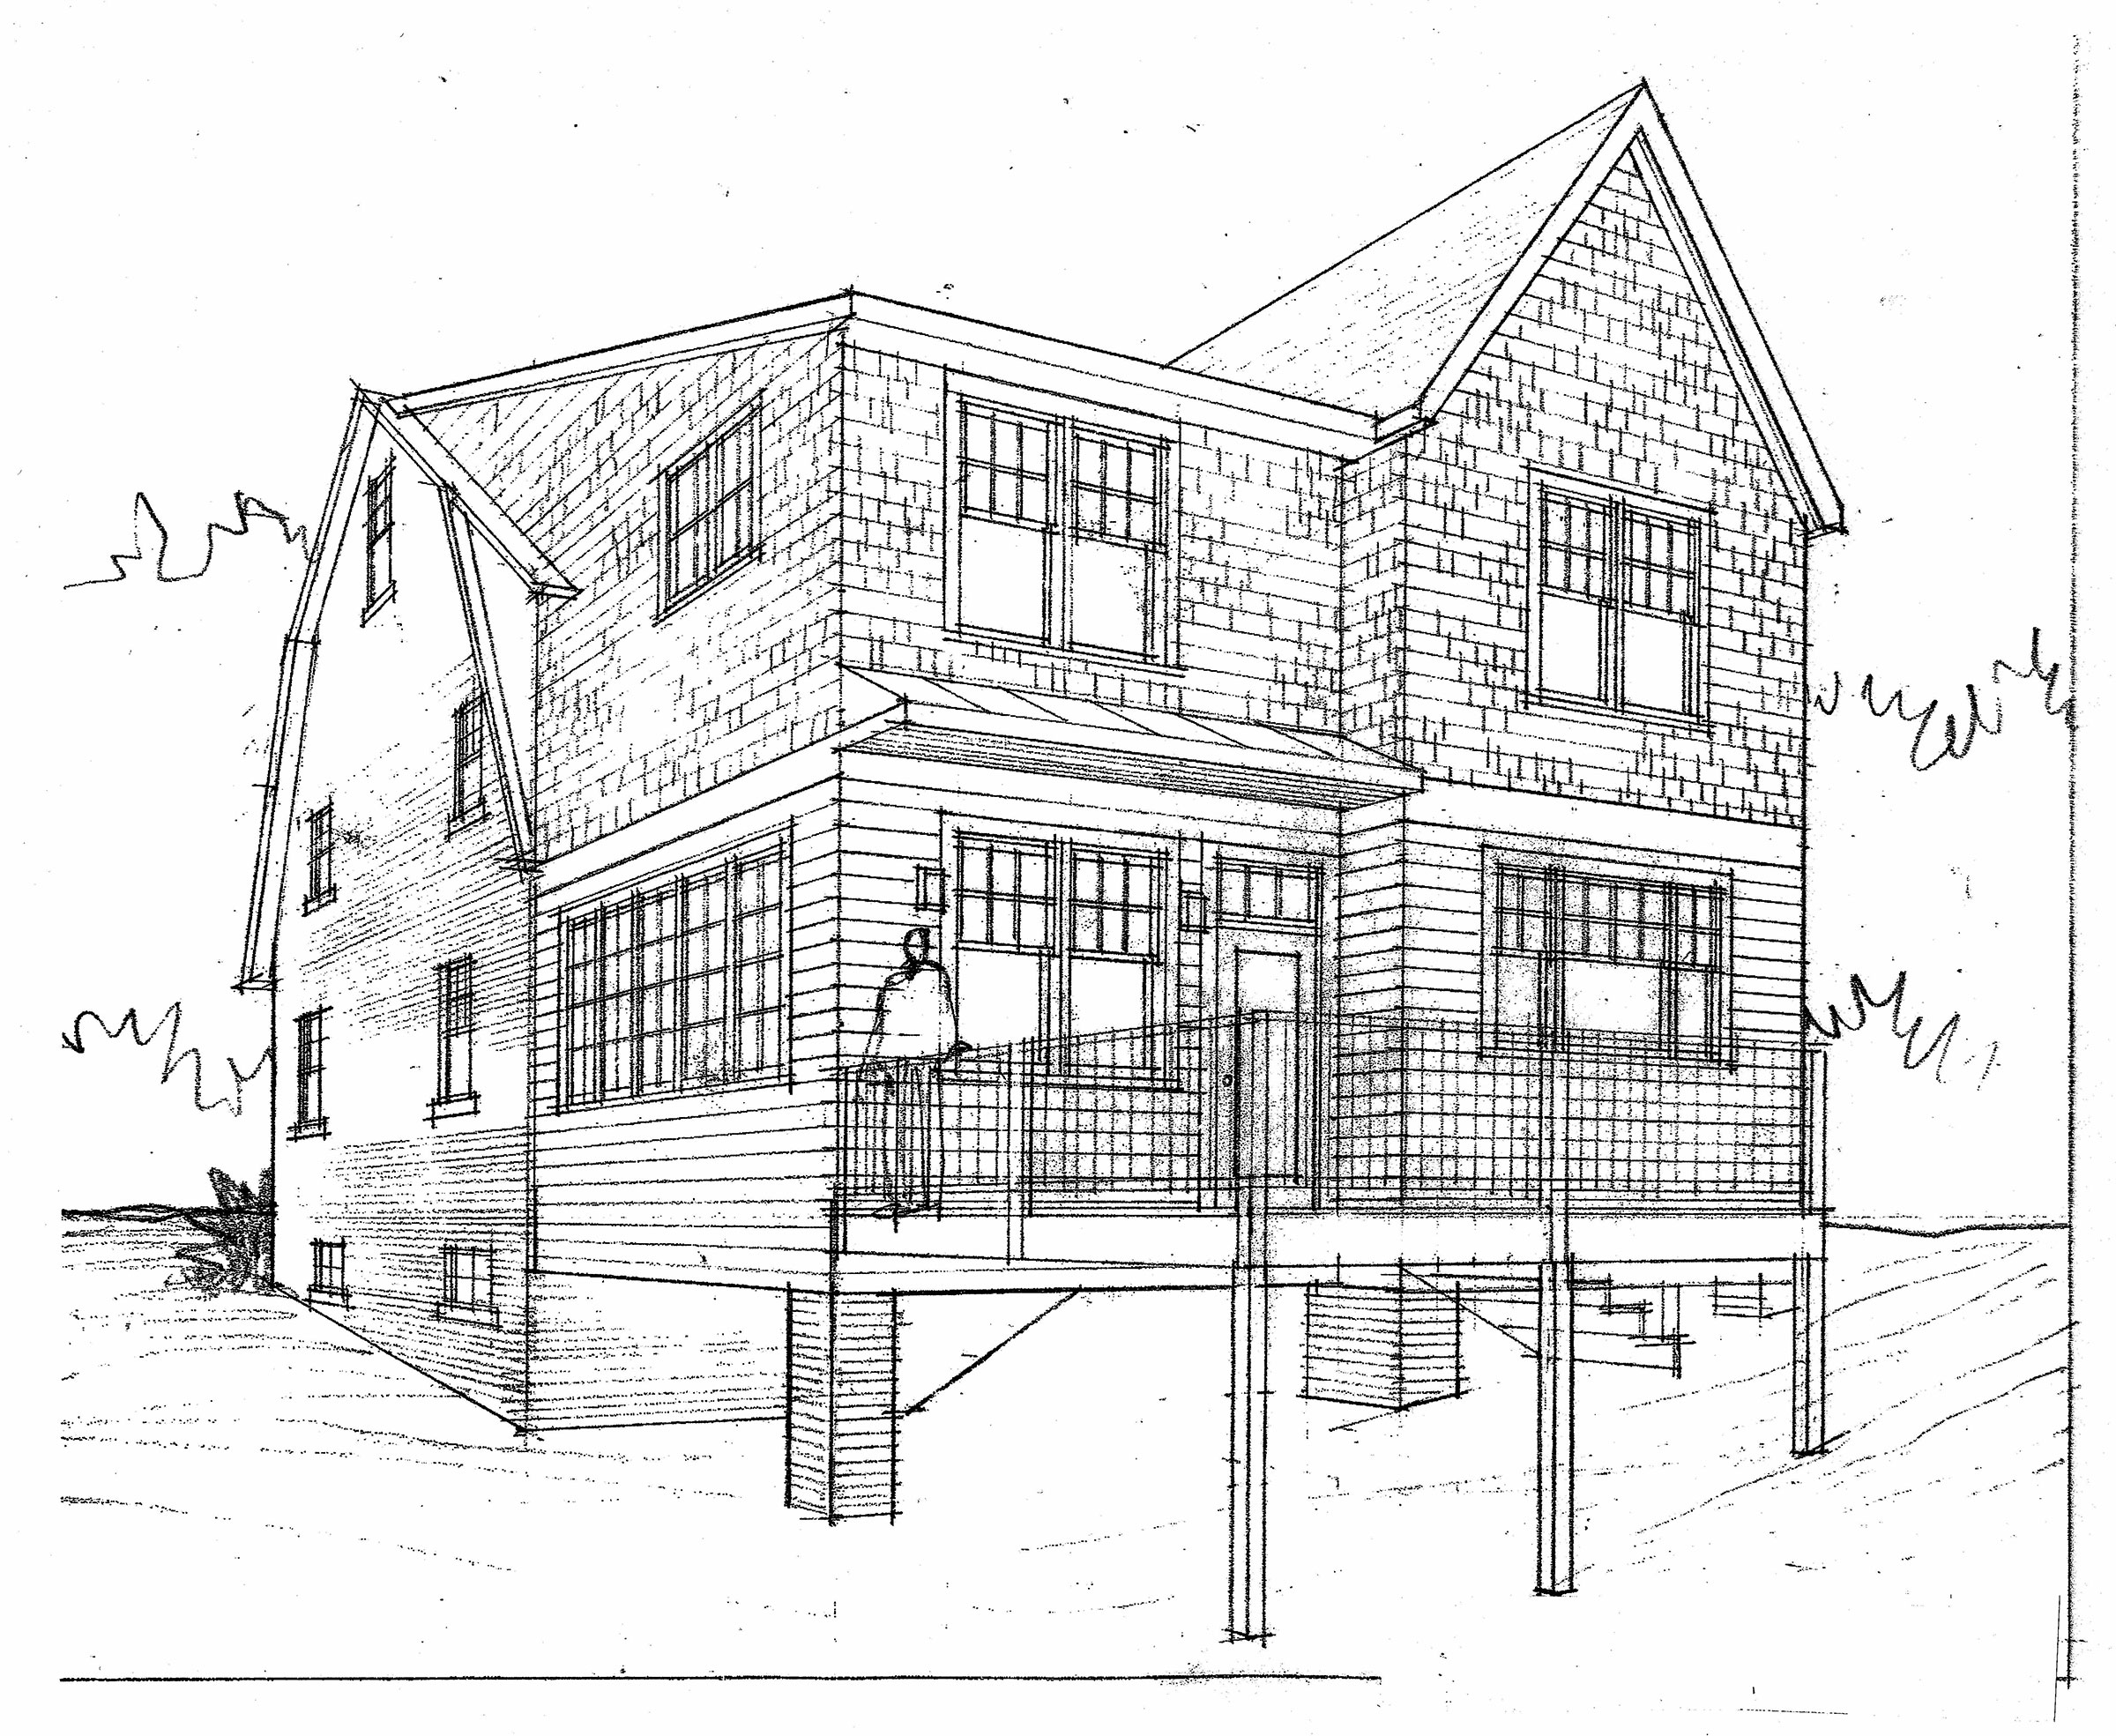 1-Sketch-Exterior-Addition-Design